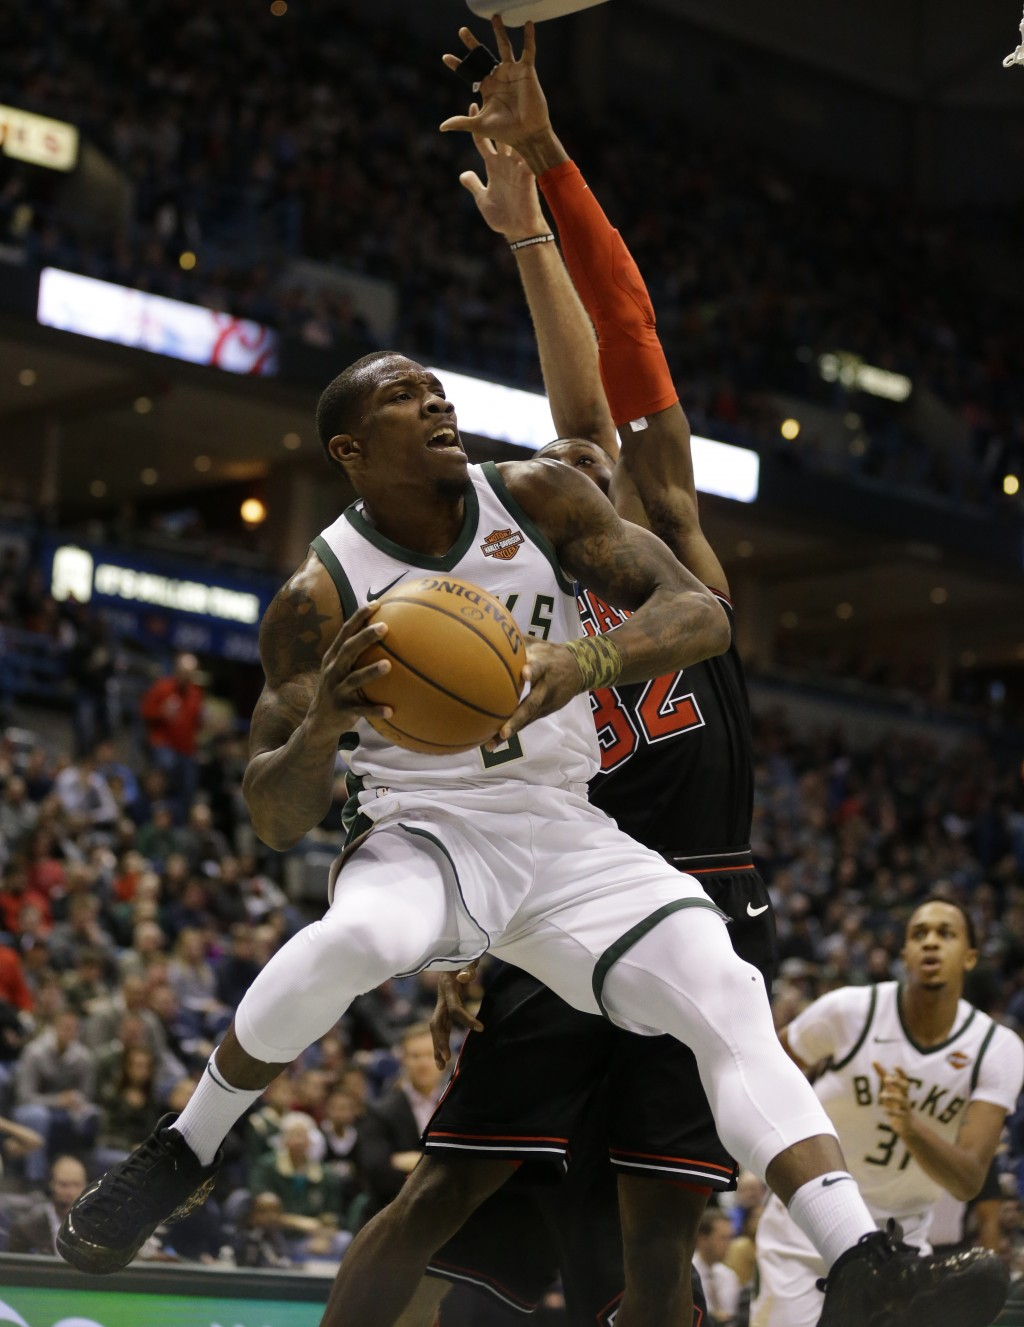 Milwaukee Bucks' Eric Bledsoe drives against the Chicago Bulls during the second half of an NBA basketball game Tuesday, Dec. 26, 2017, in Milwaukee. ...